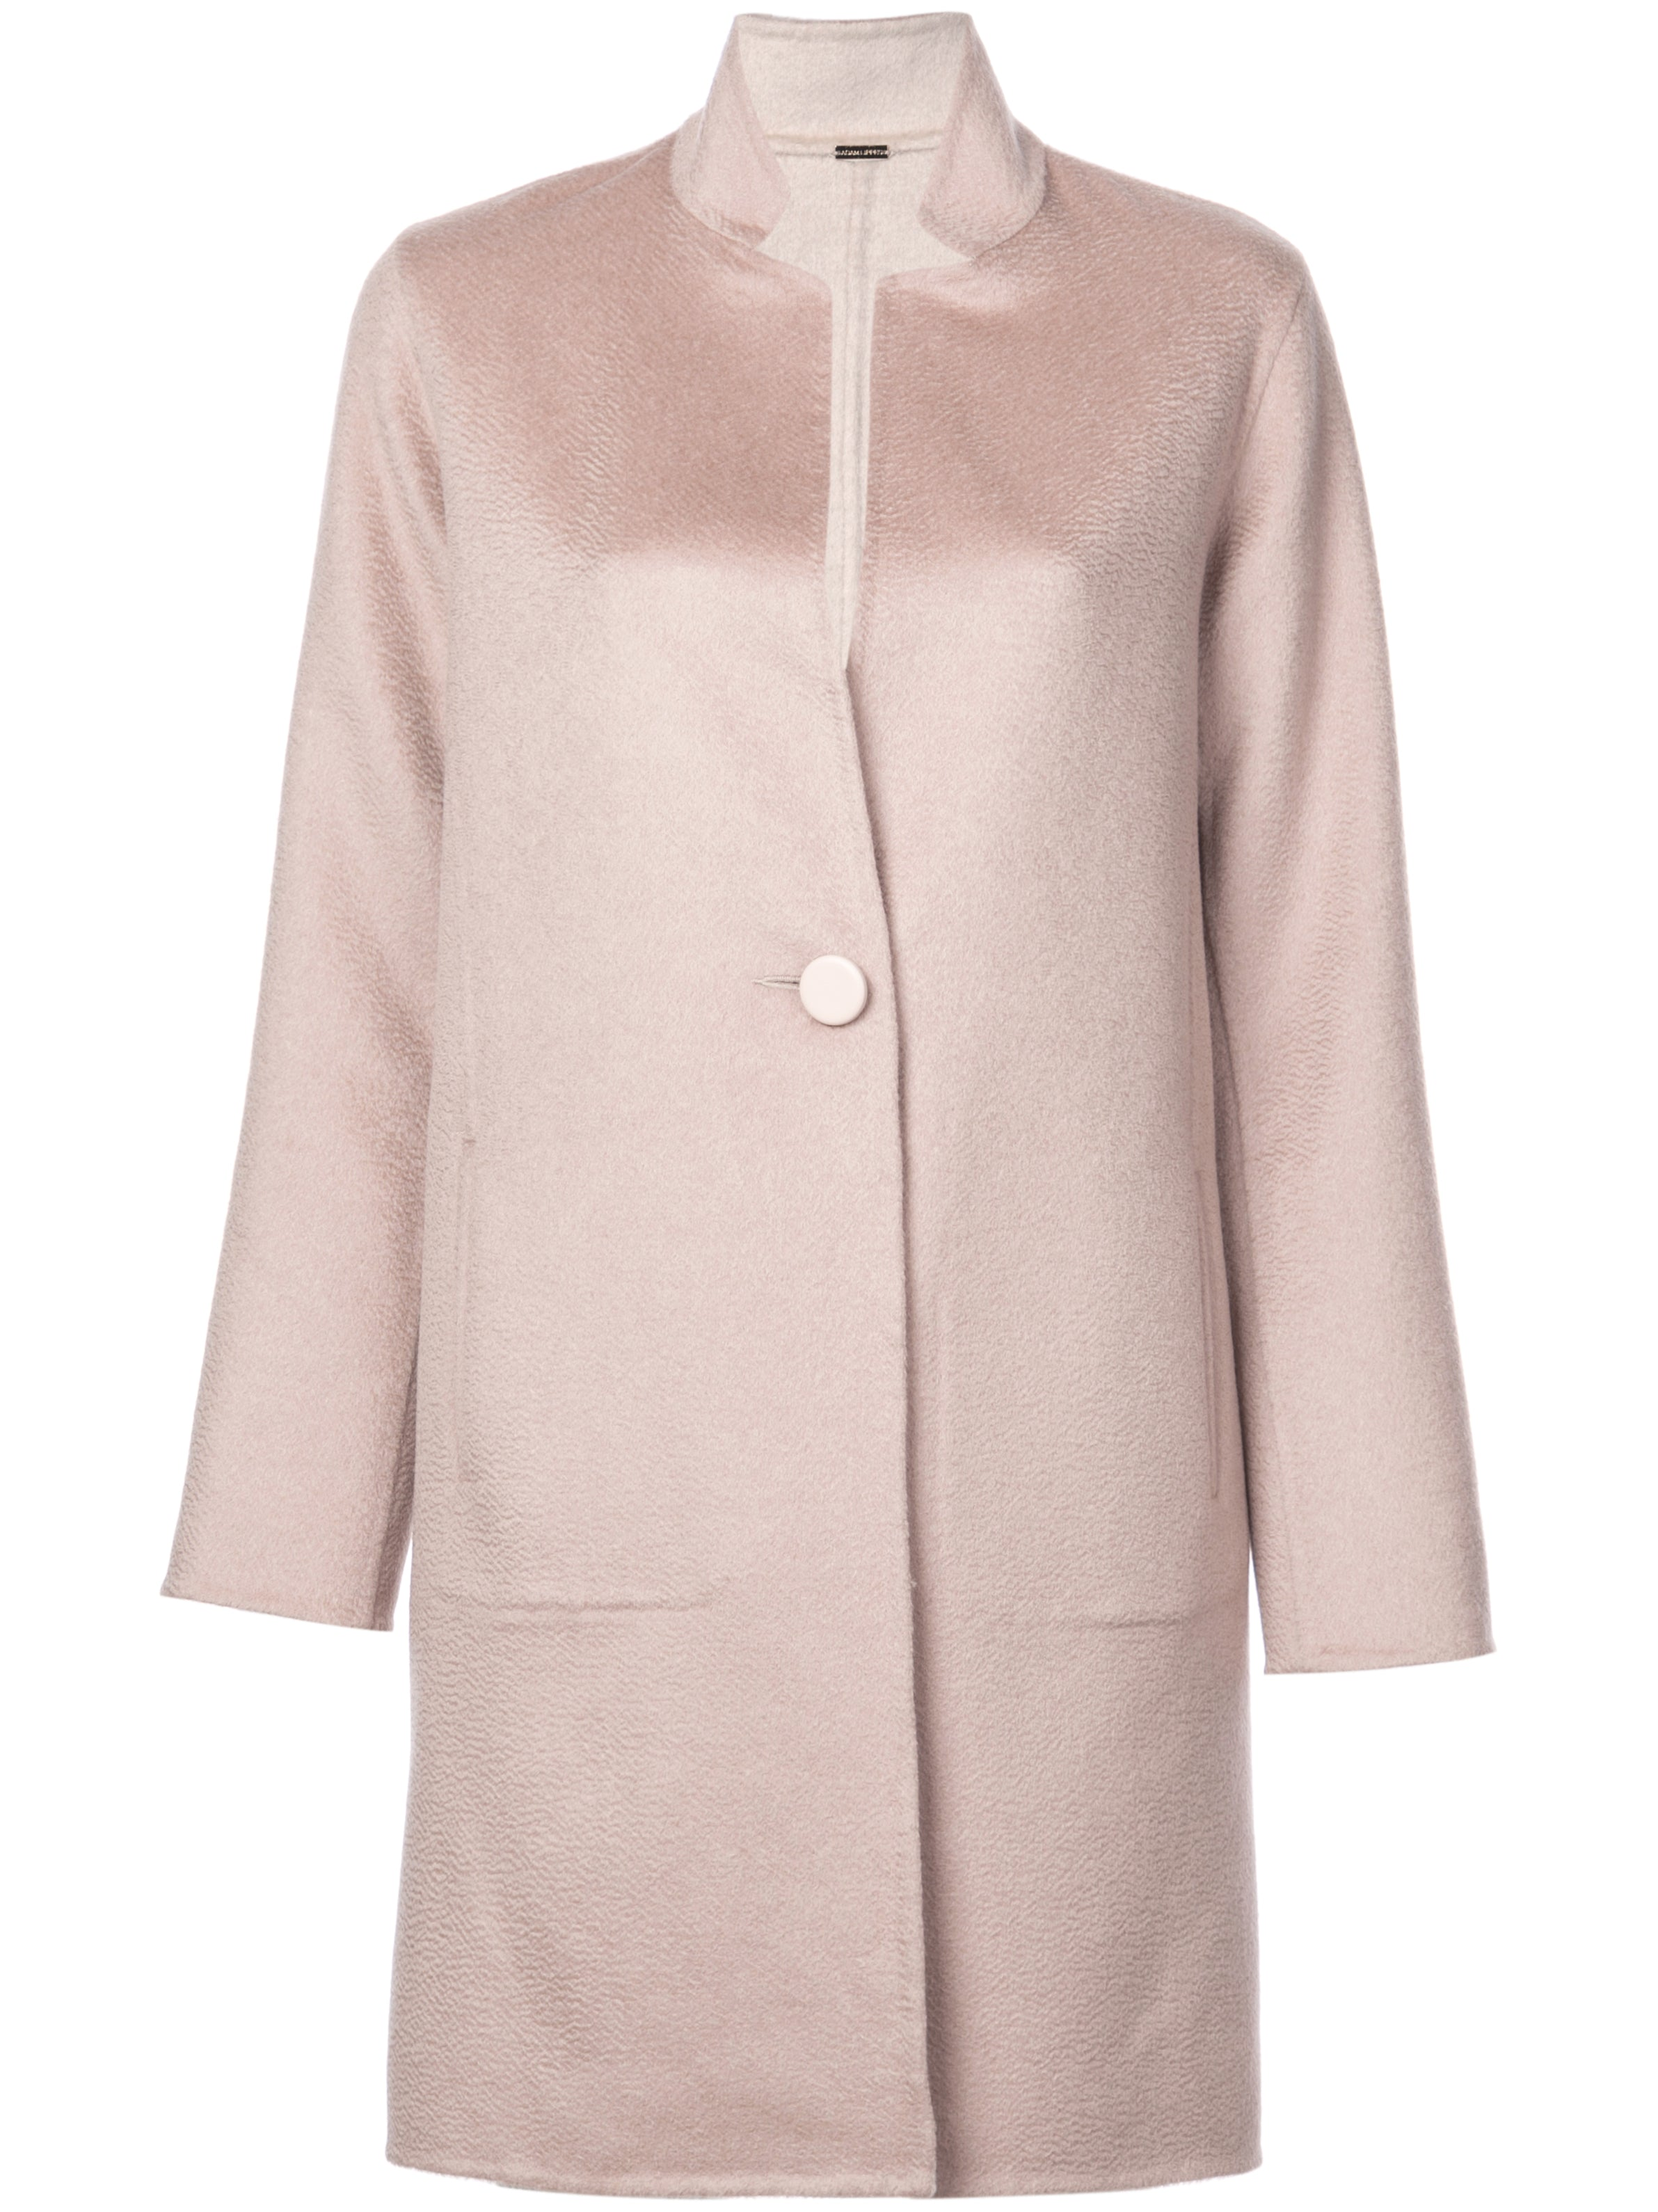 Reversible Car Coat in Double Face Cashmere